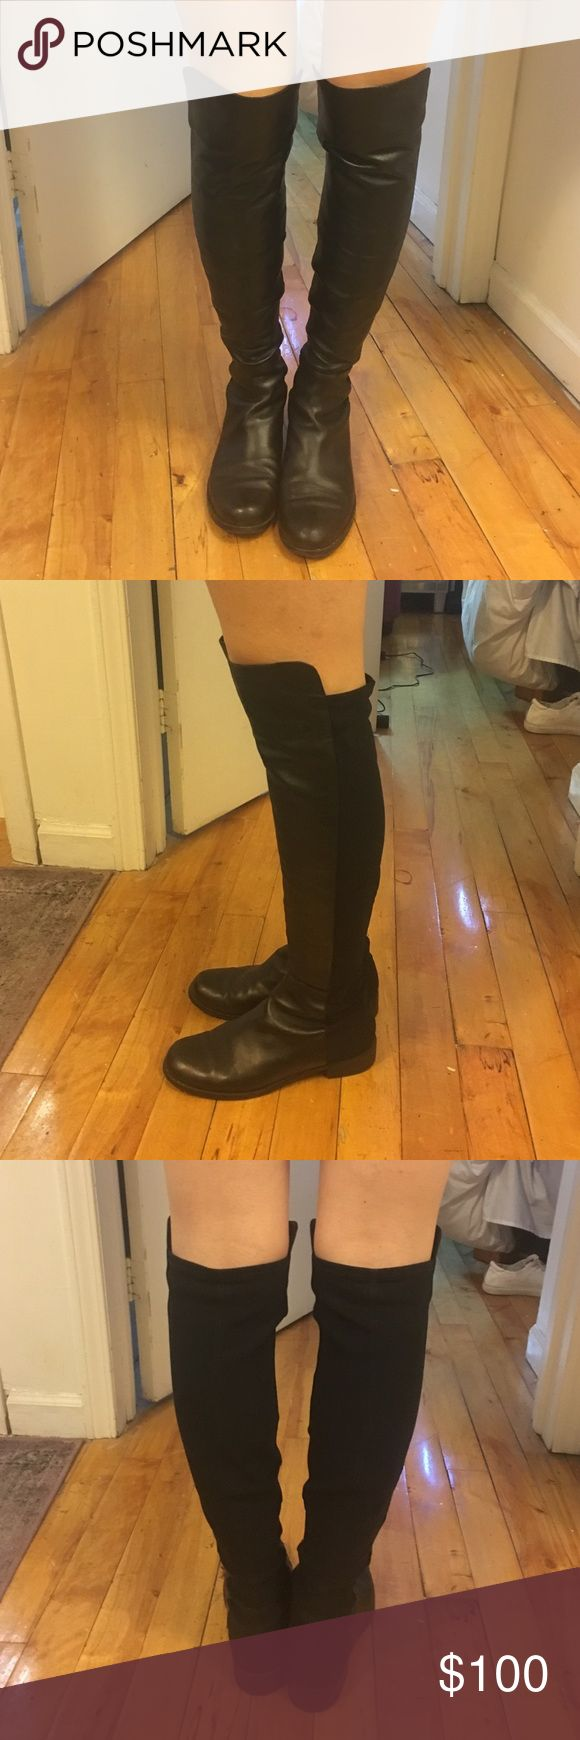 Stuart Weitzman black leather 5050 boot Over the knee, flat leather boots. Size 7 Stuart Weitzman Shoes Over the Knee Boots